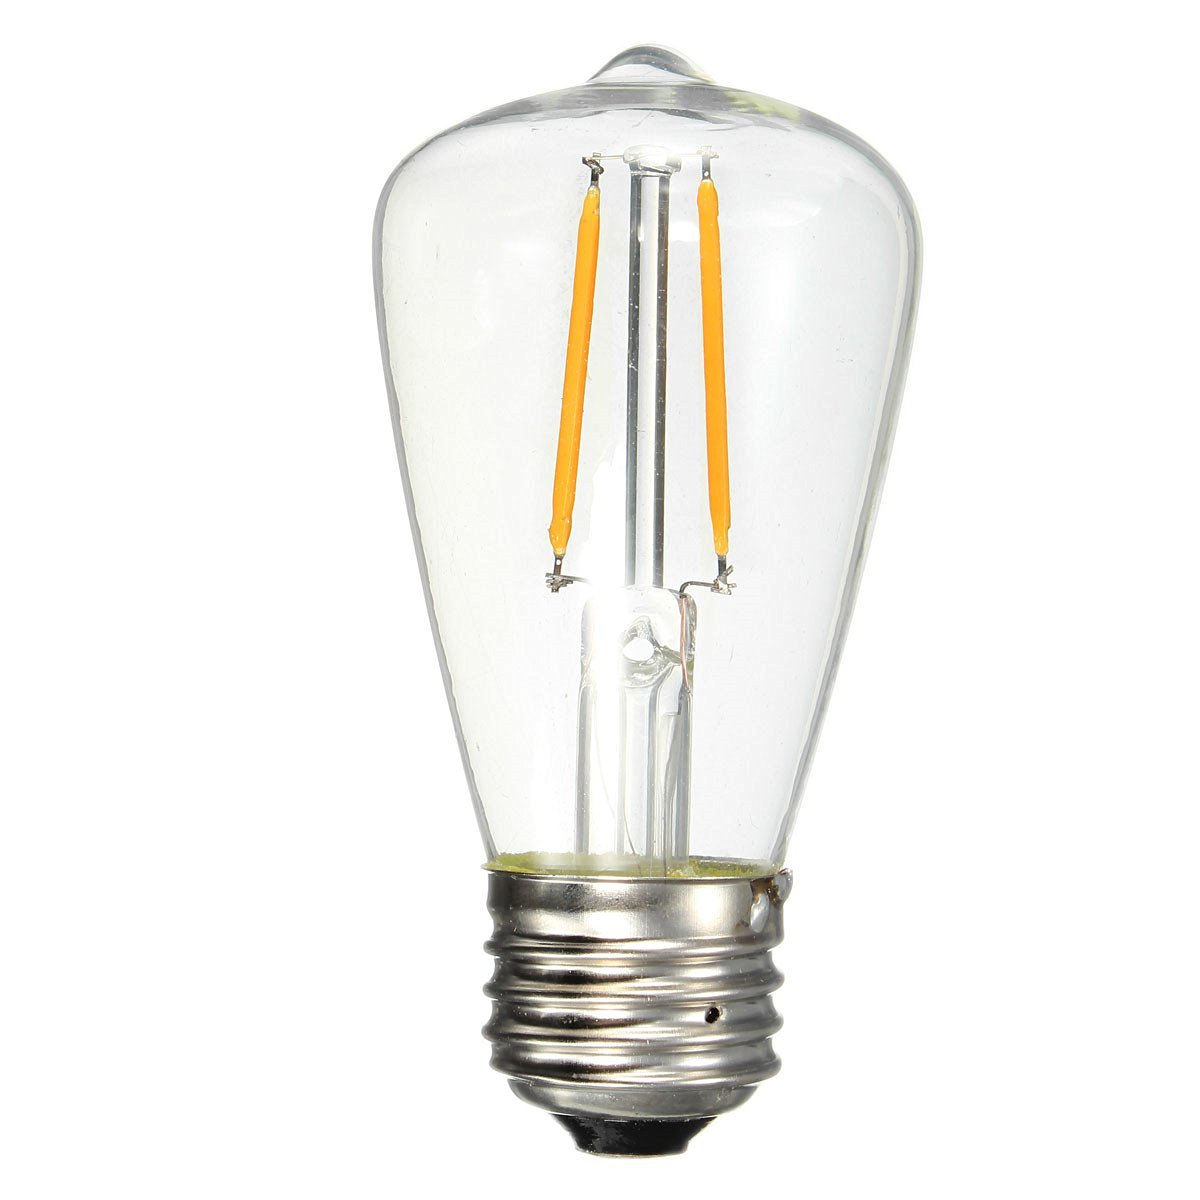 KINGSO E27 2W ST48 Cob Led Vintage Light Bulb Retro Edison Style Screw Technology 20W Incandescent Bulb Equivalent Old Fashioned Squirrel Cage Filament Not Dimmable Warm White 2700K 200lm Unique Designer Amber Tinted 110-240V